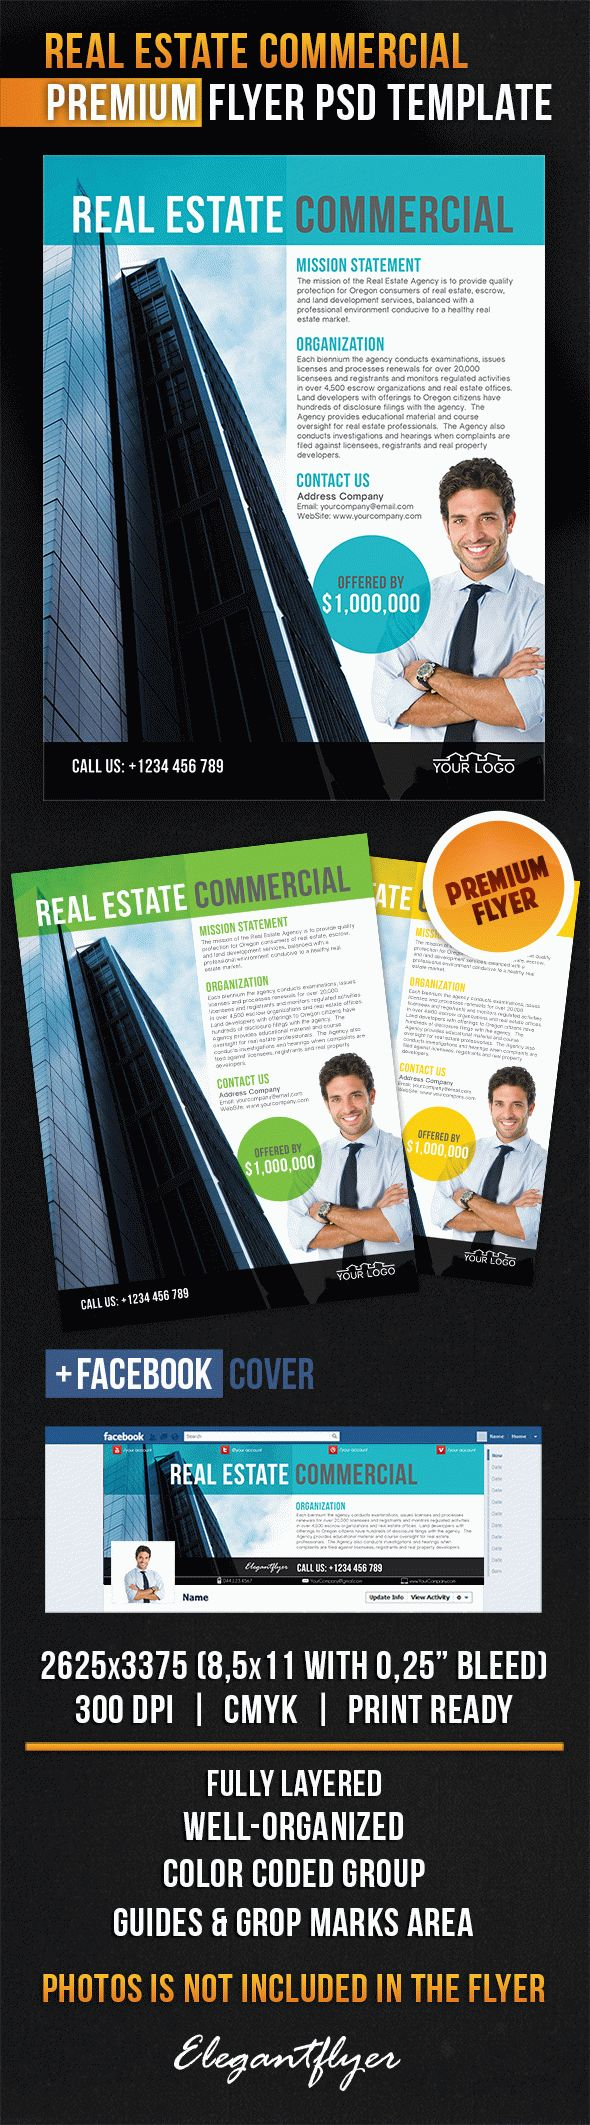 Real Estate Commercial – Flyer PSD Template + Facebook Cover